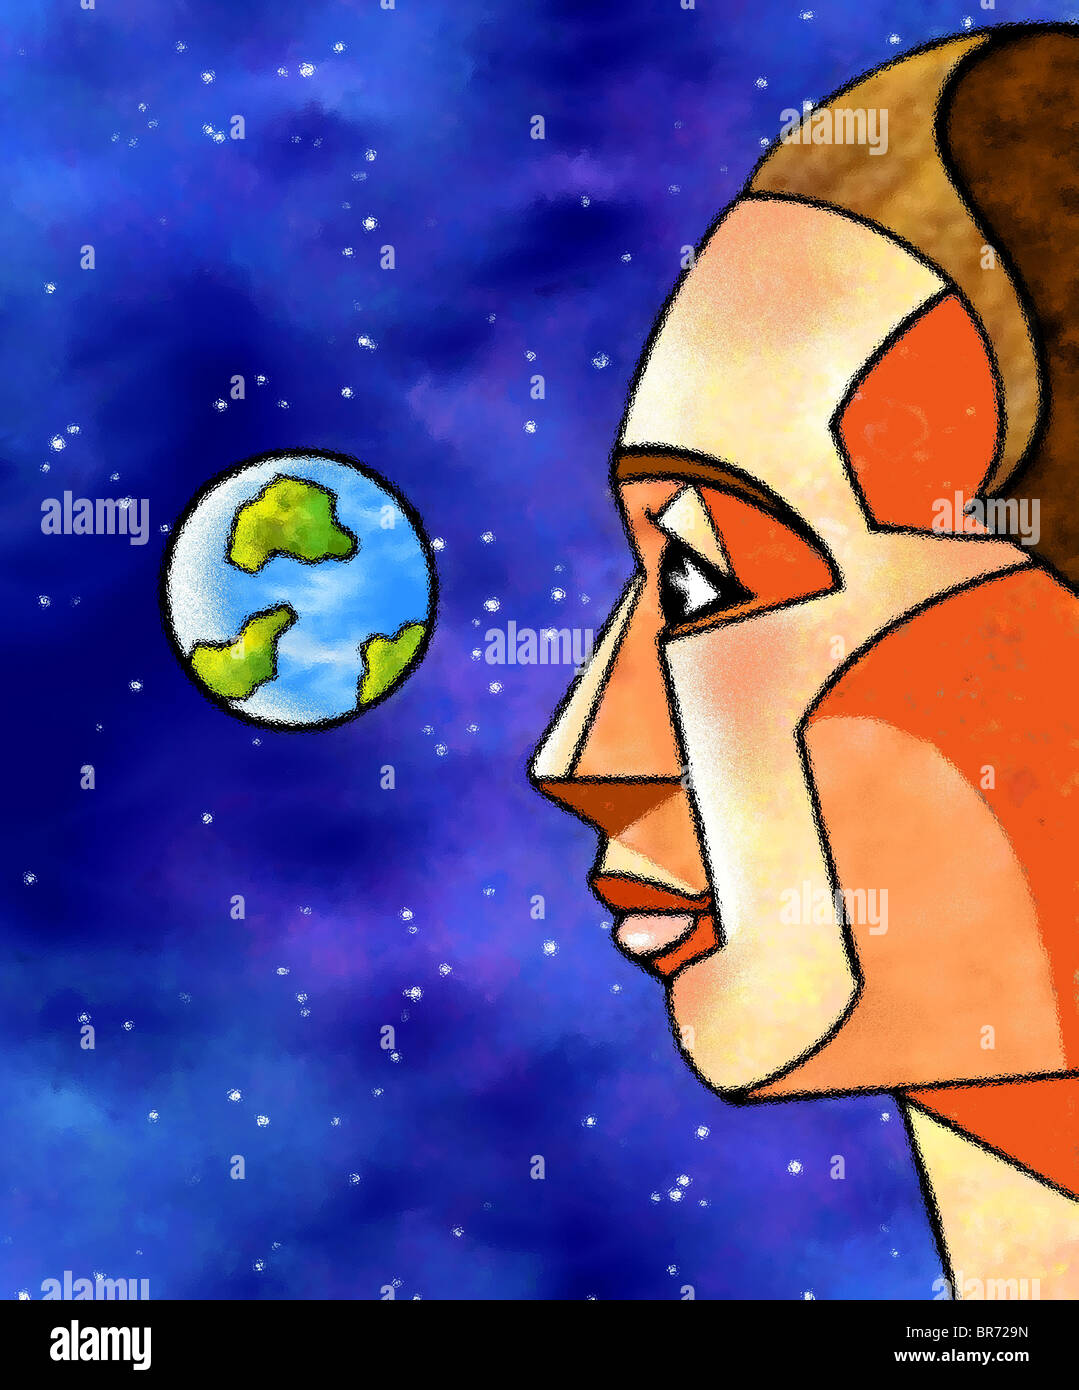 An illustration of a man in outerspace looking back at the earth - Stock Image